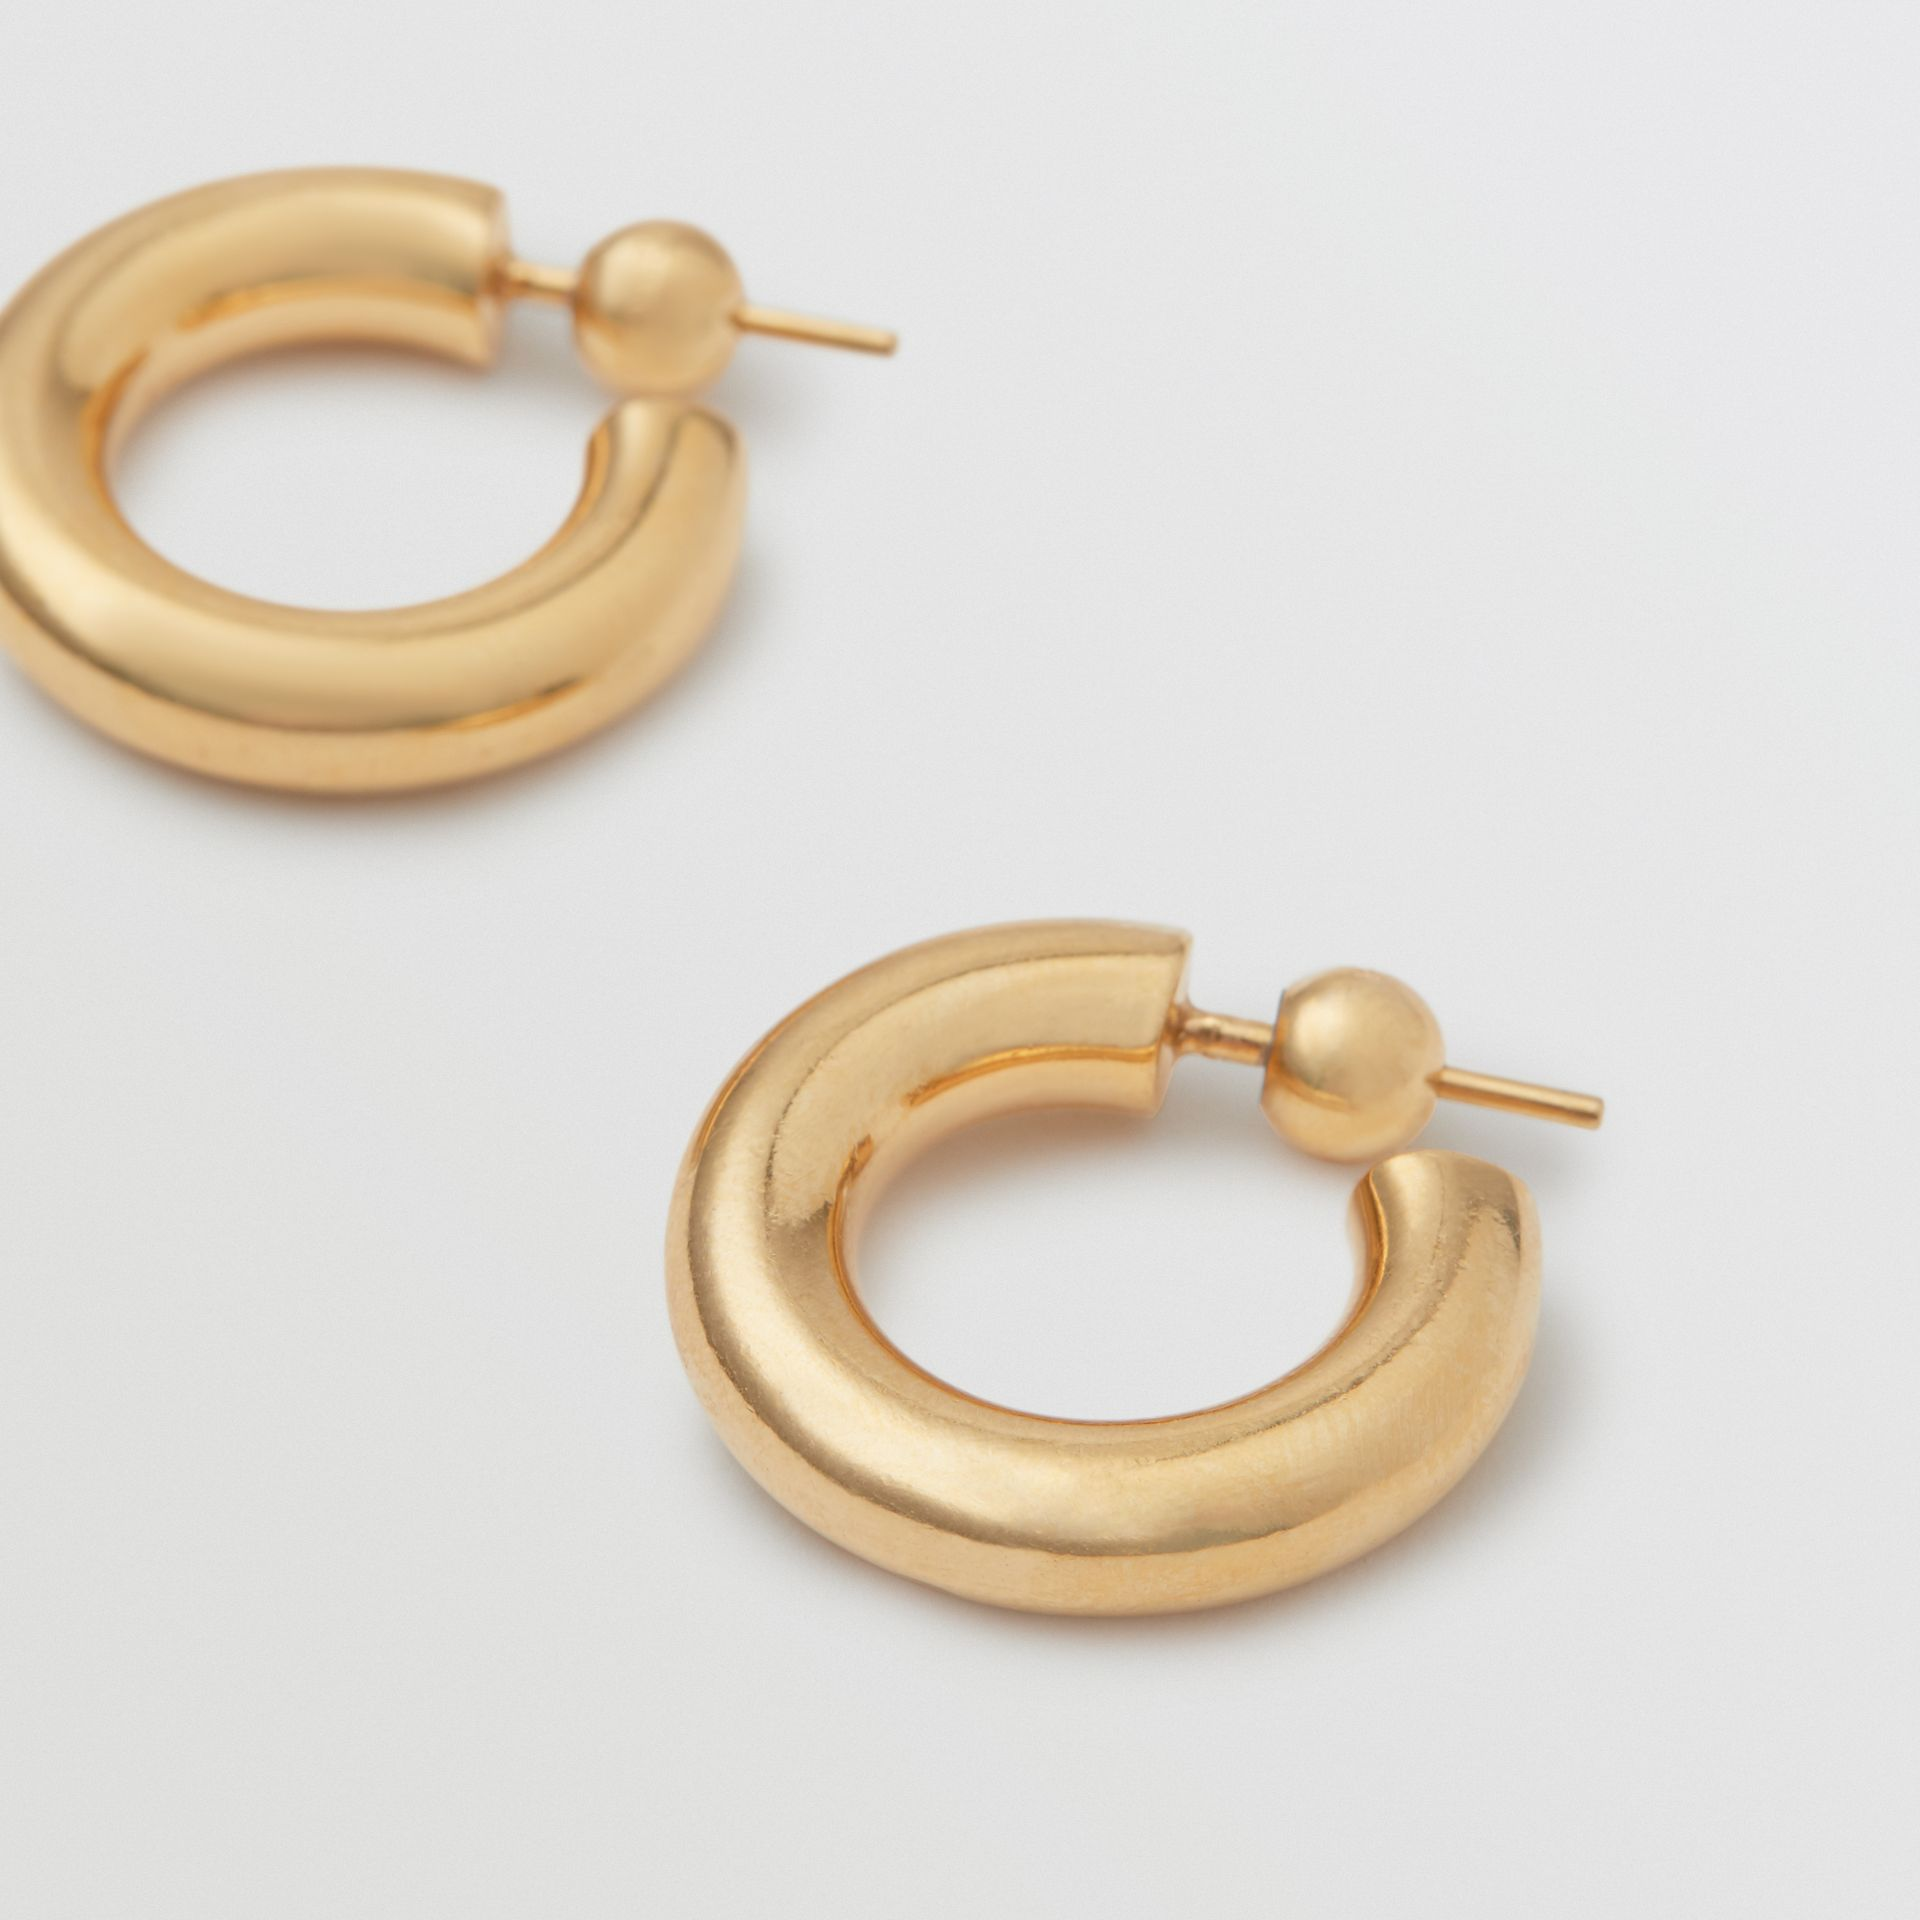 Gold-plated Hoop Earrings in Light - Women | Burberry - gallery image 1